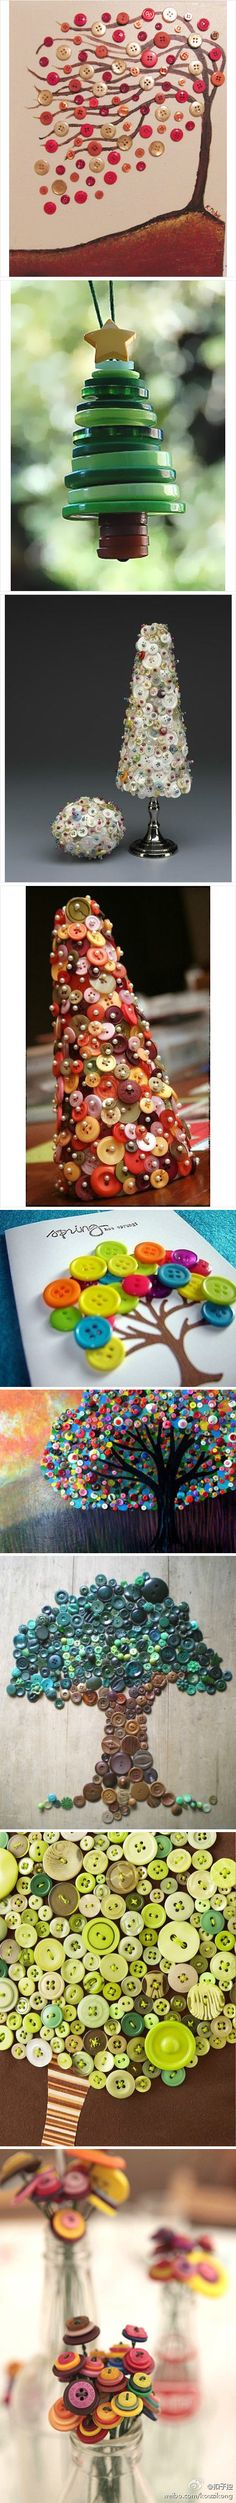 So many Button crafts! Gonna try button art soon. Kids Crafts, Cute Crafts, Crafts To Make, Arts And Crafts, Paper Crafts, Recycle Crafts, Simple Crafts, Reuse Recycle, Creative Crafts